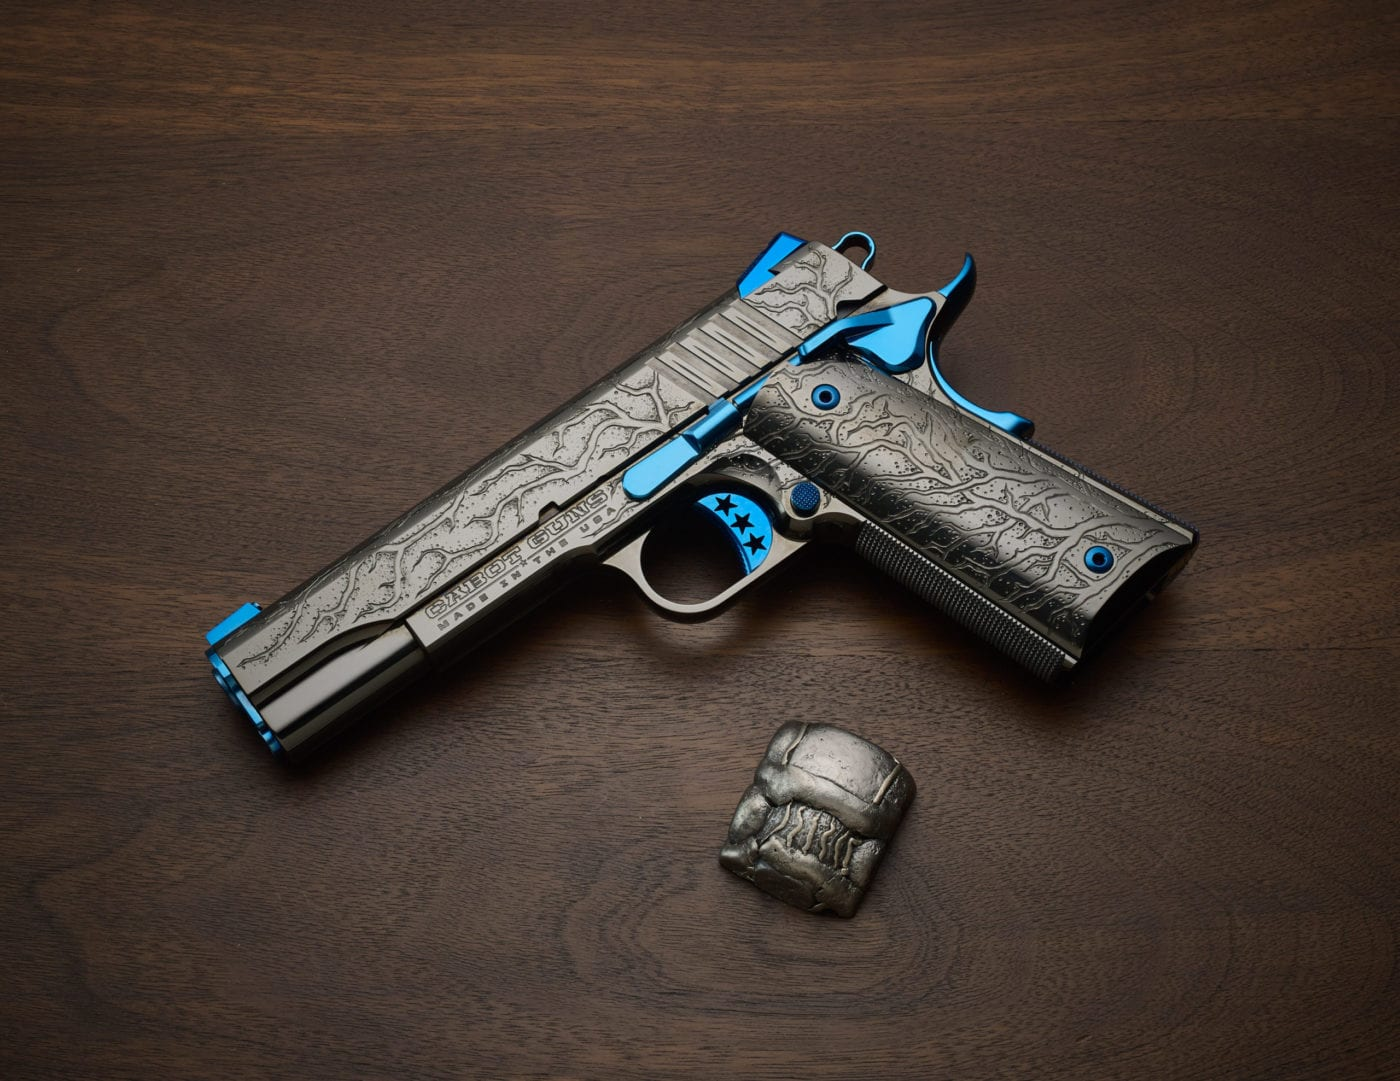 cabot guns blue scorpion 7